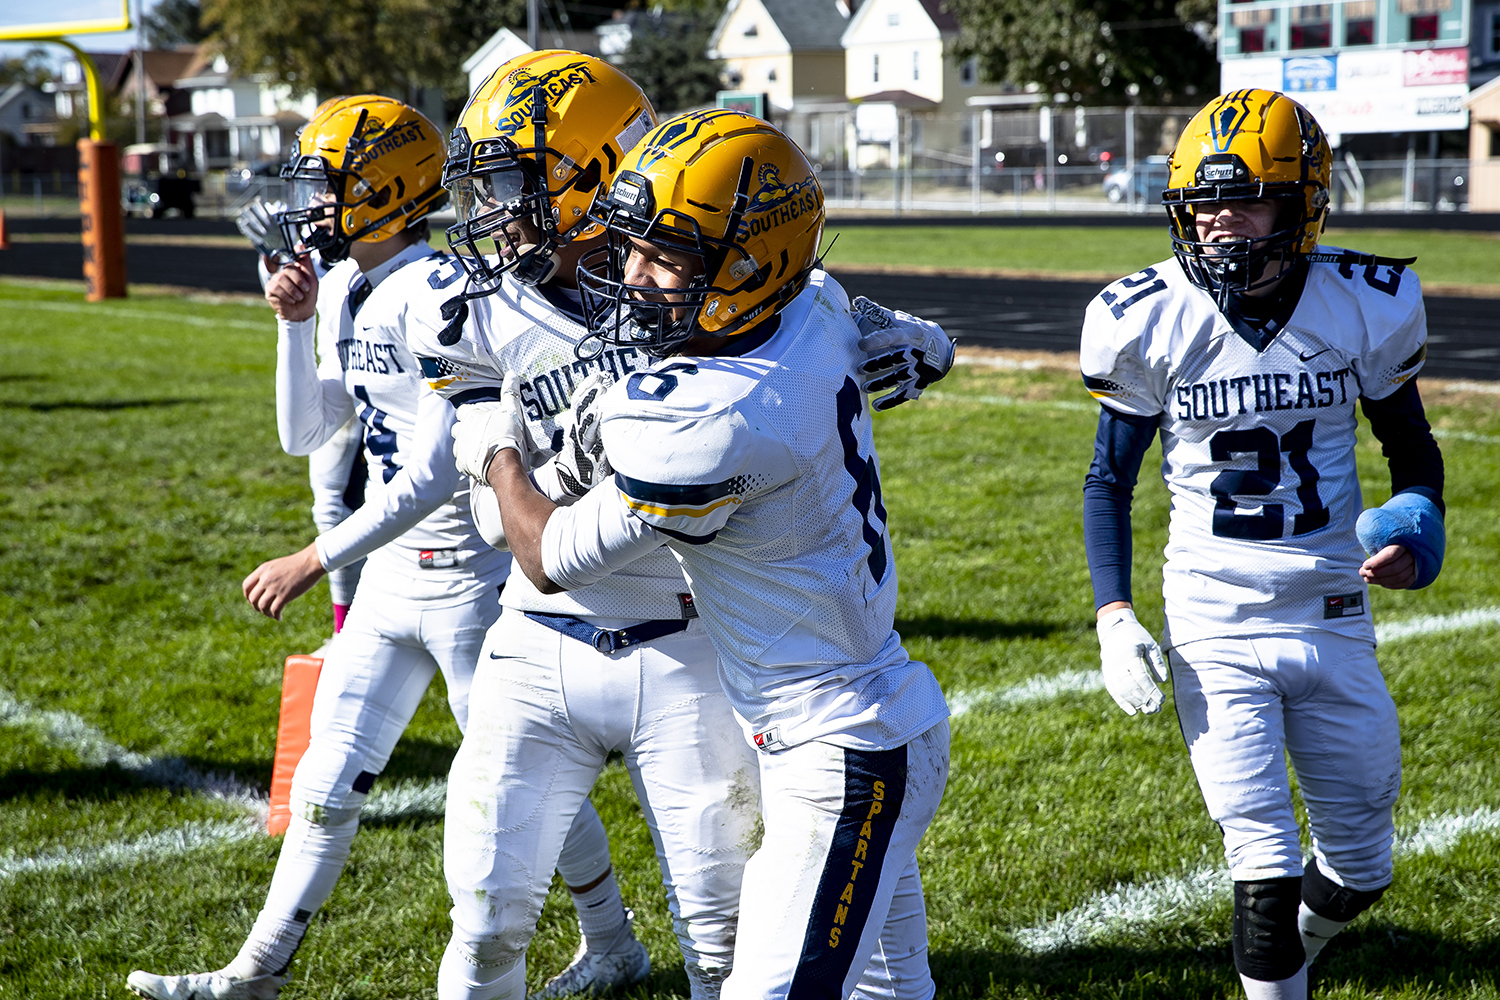 Southeast's Deon Fairlee (6) celebrates with teammates after returning a Lanphier kick into the end zone for a touchdown during the third quarter at Memorial Stadium Saturday, Oct. 20, 2018  in Springfield, Ill. [Rich Saal/The State Journal-Register]